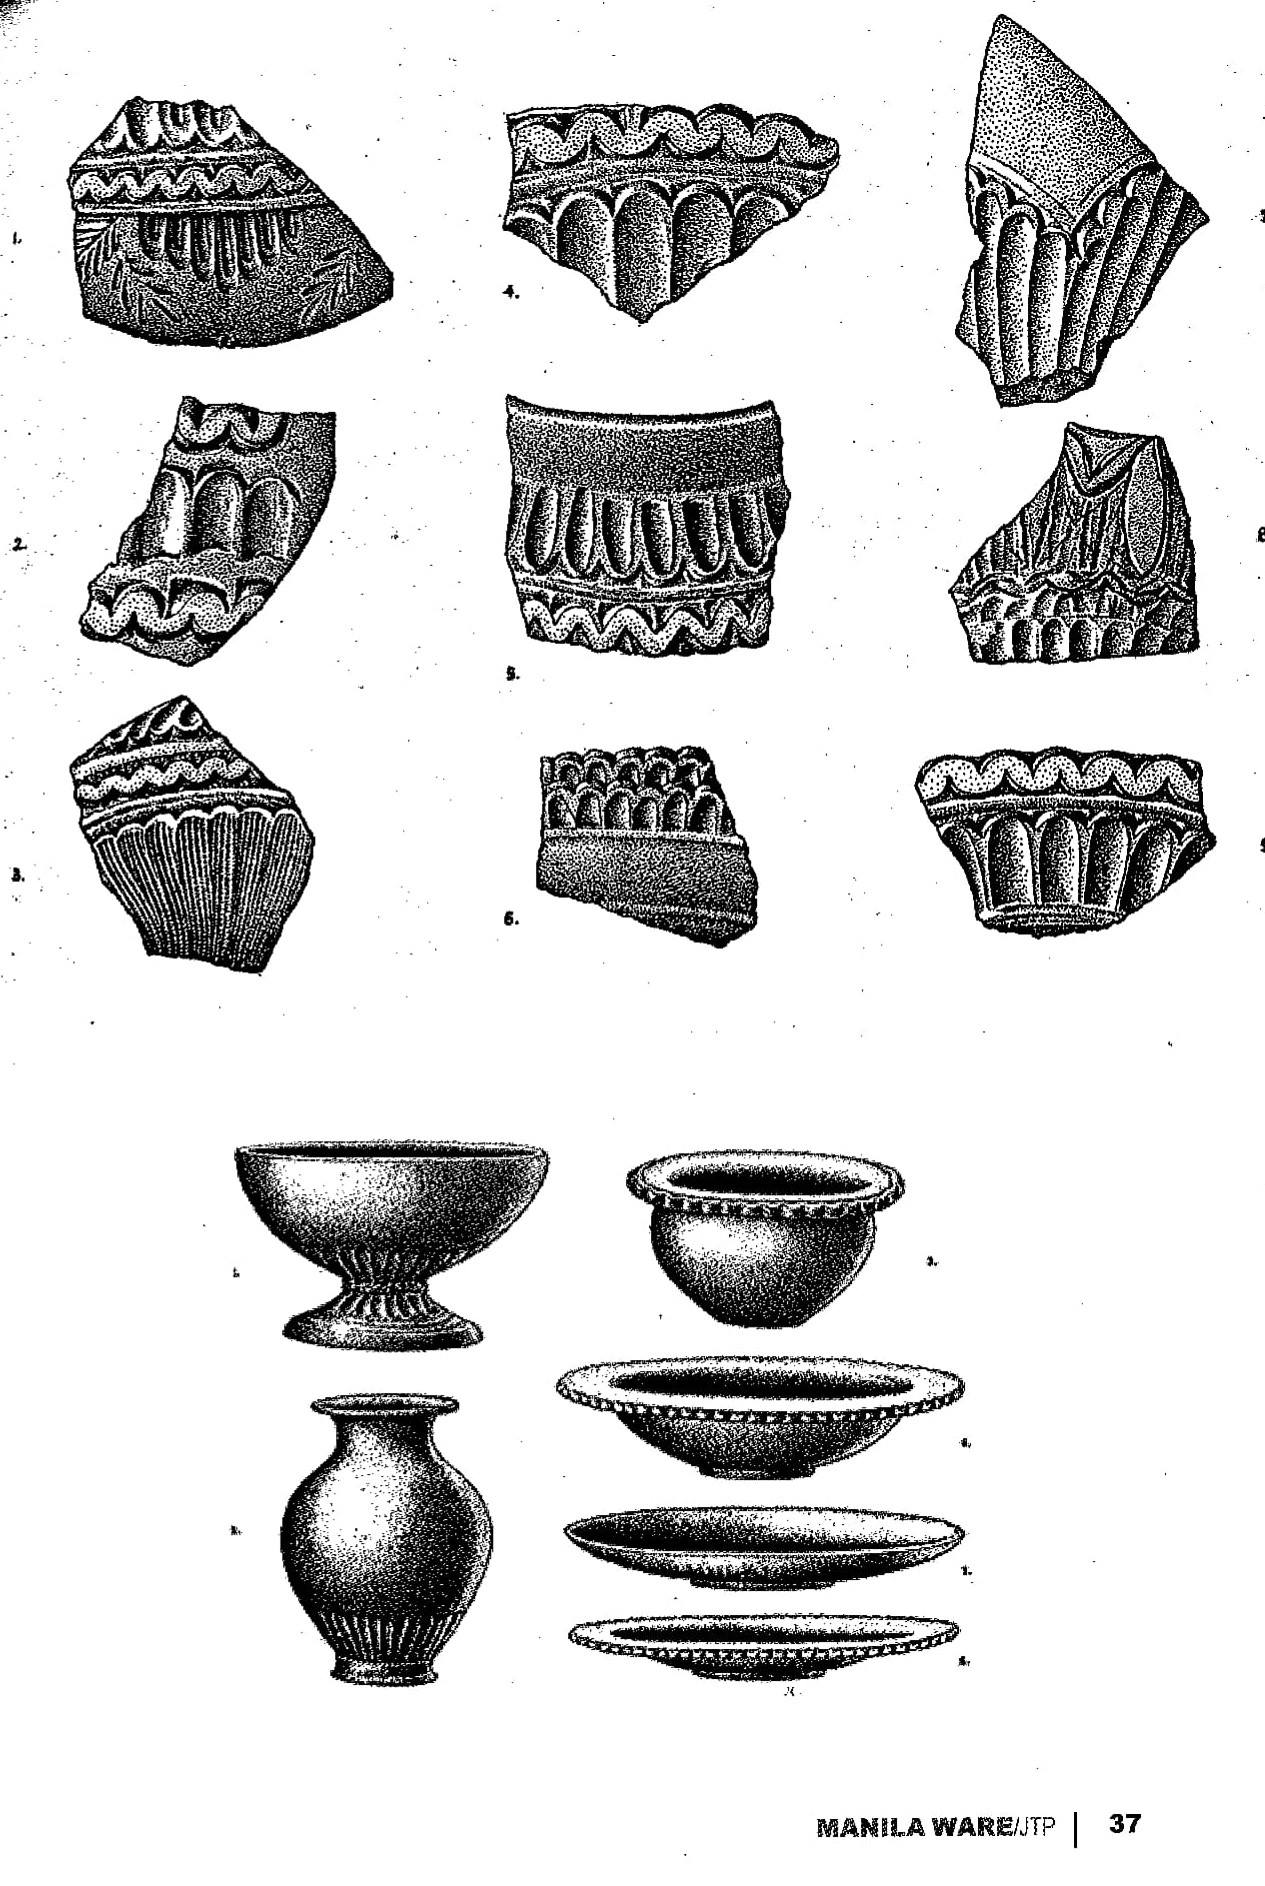 Manila Ware Pottery - The Ceramic Heritage of the Philippines